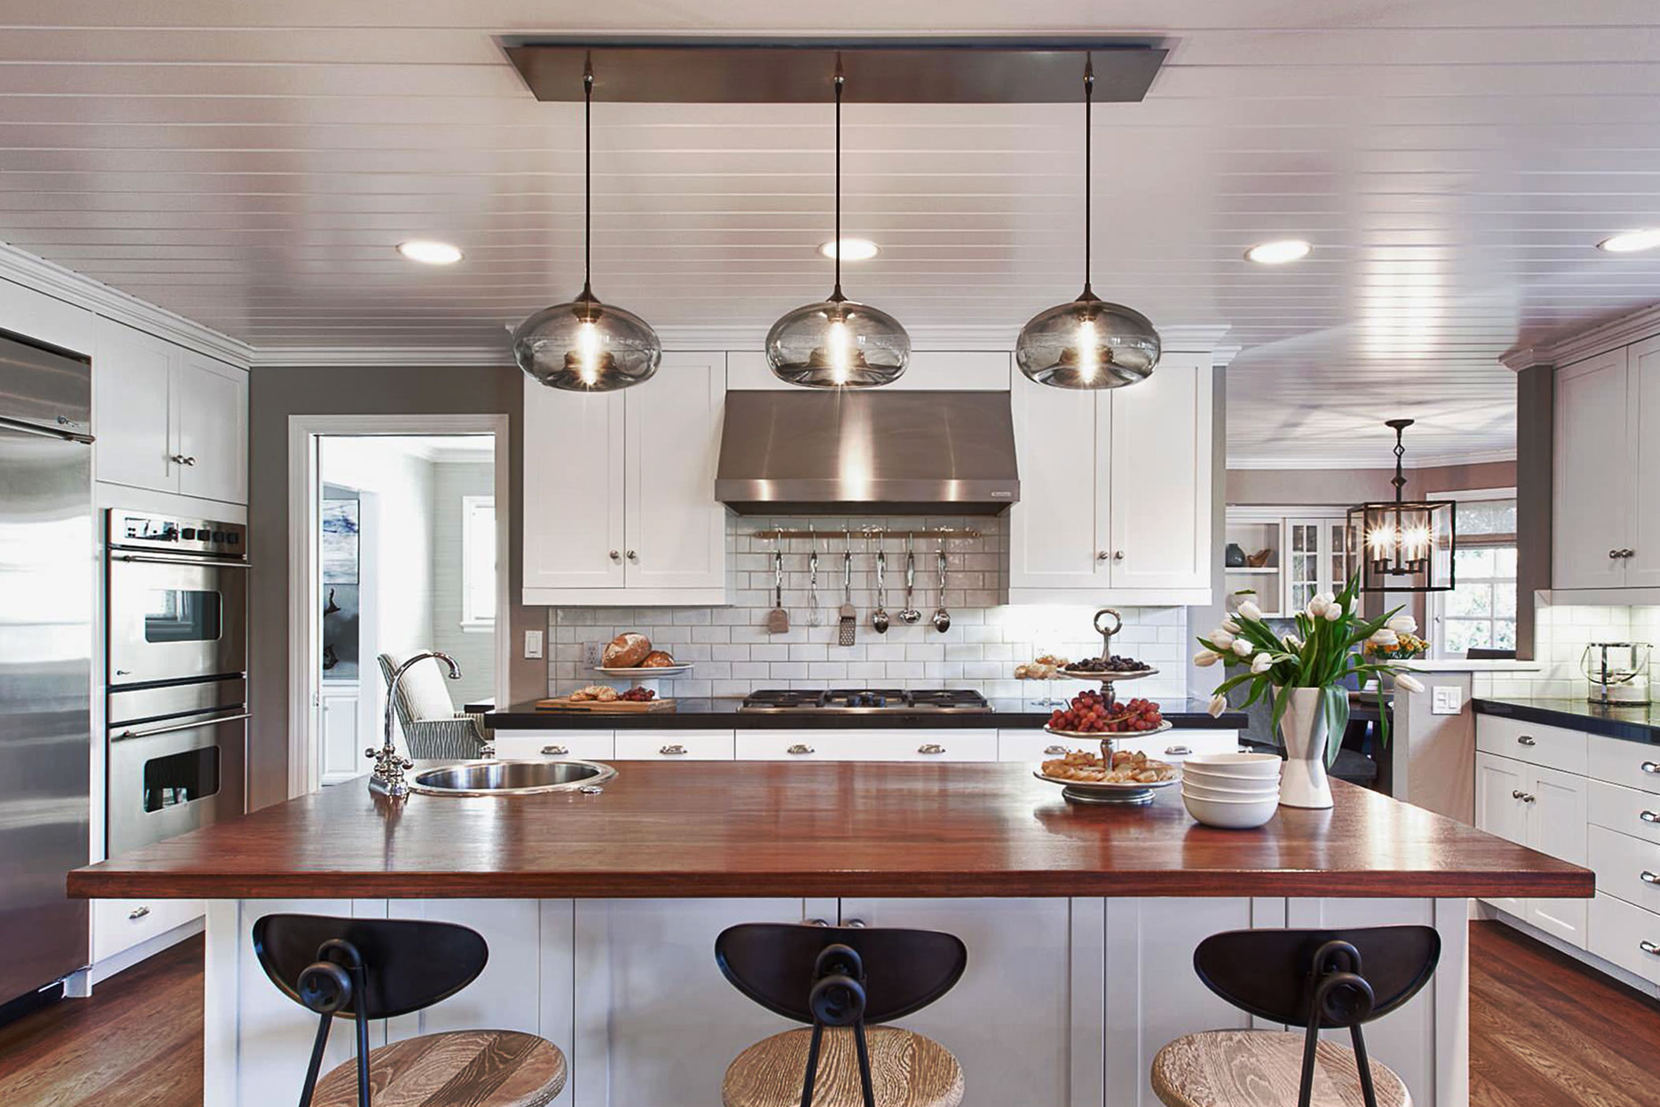 Lighting-Project-Pages_0007s_0015_Kitchen-Multi-Pendant-Chandelier-Modern-Lighting.png